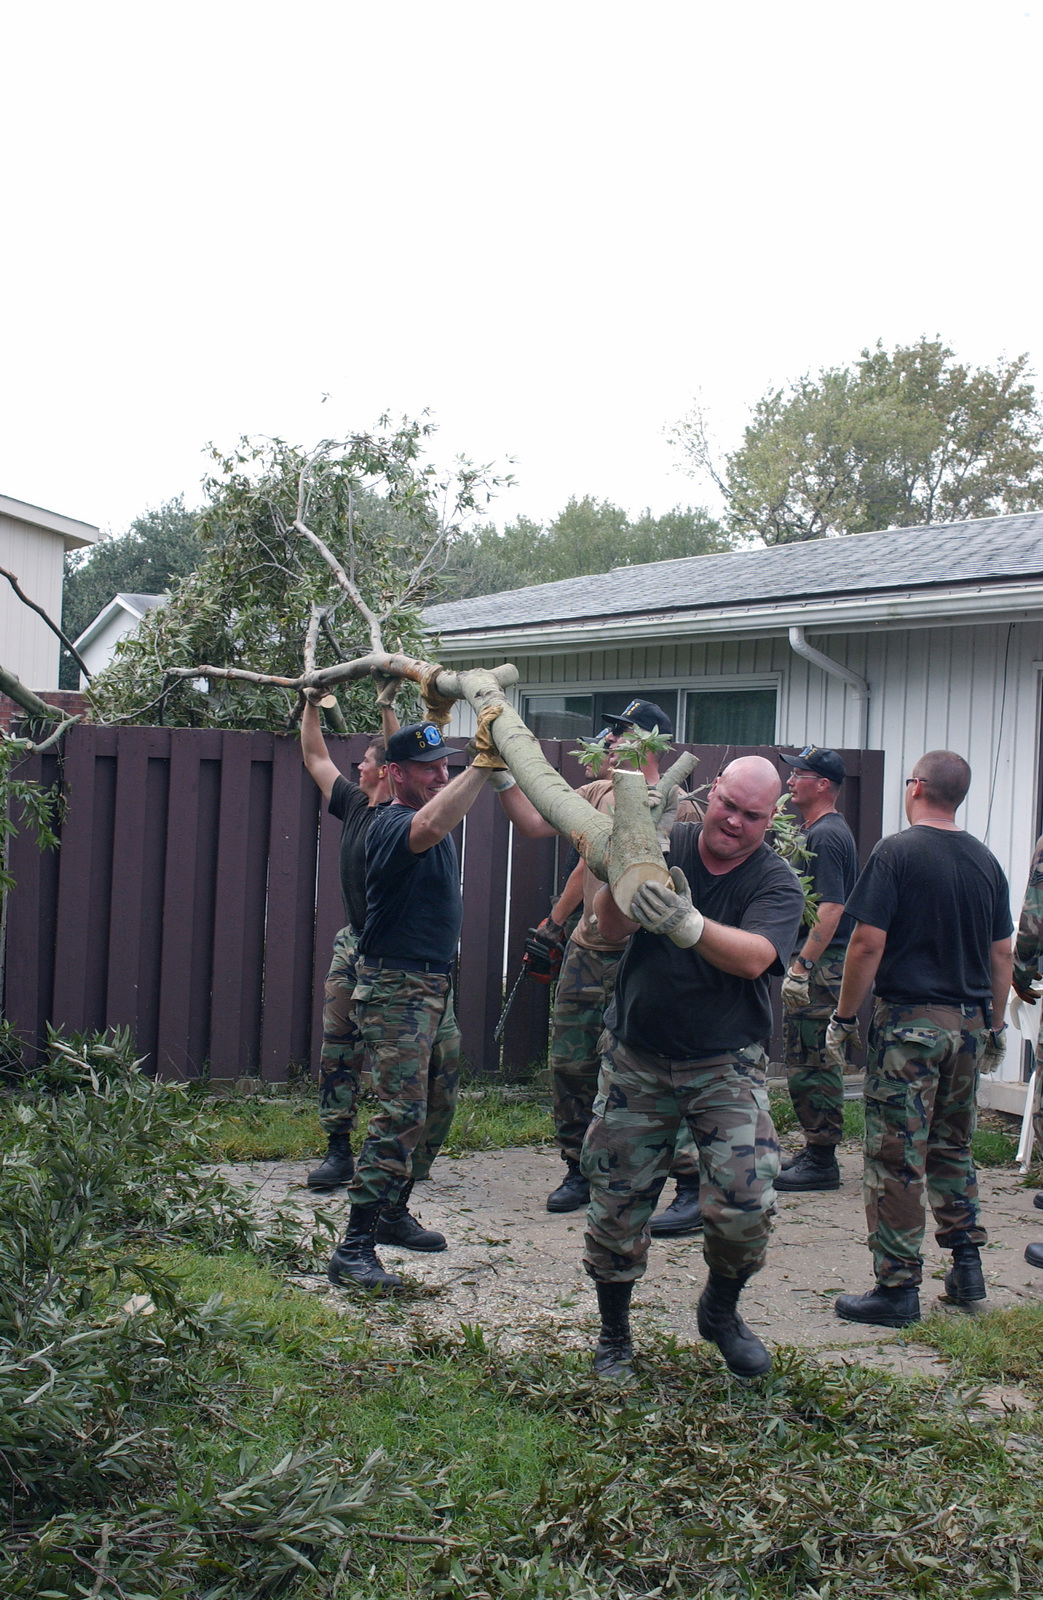 US Air Force (USAF) cleanup crews from the 1ST Civil Engineering Squadron (CES) in conjunction with other units work throughout Langley Air Force Base (AFB), Virginia (VA), cleaning up trees and debris left behind by Hurricane Isabel